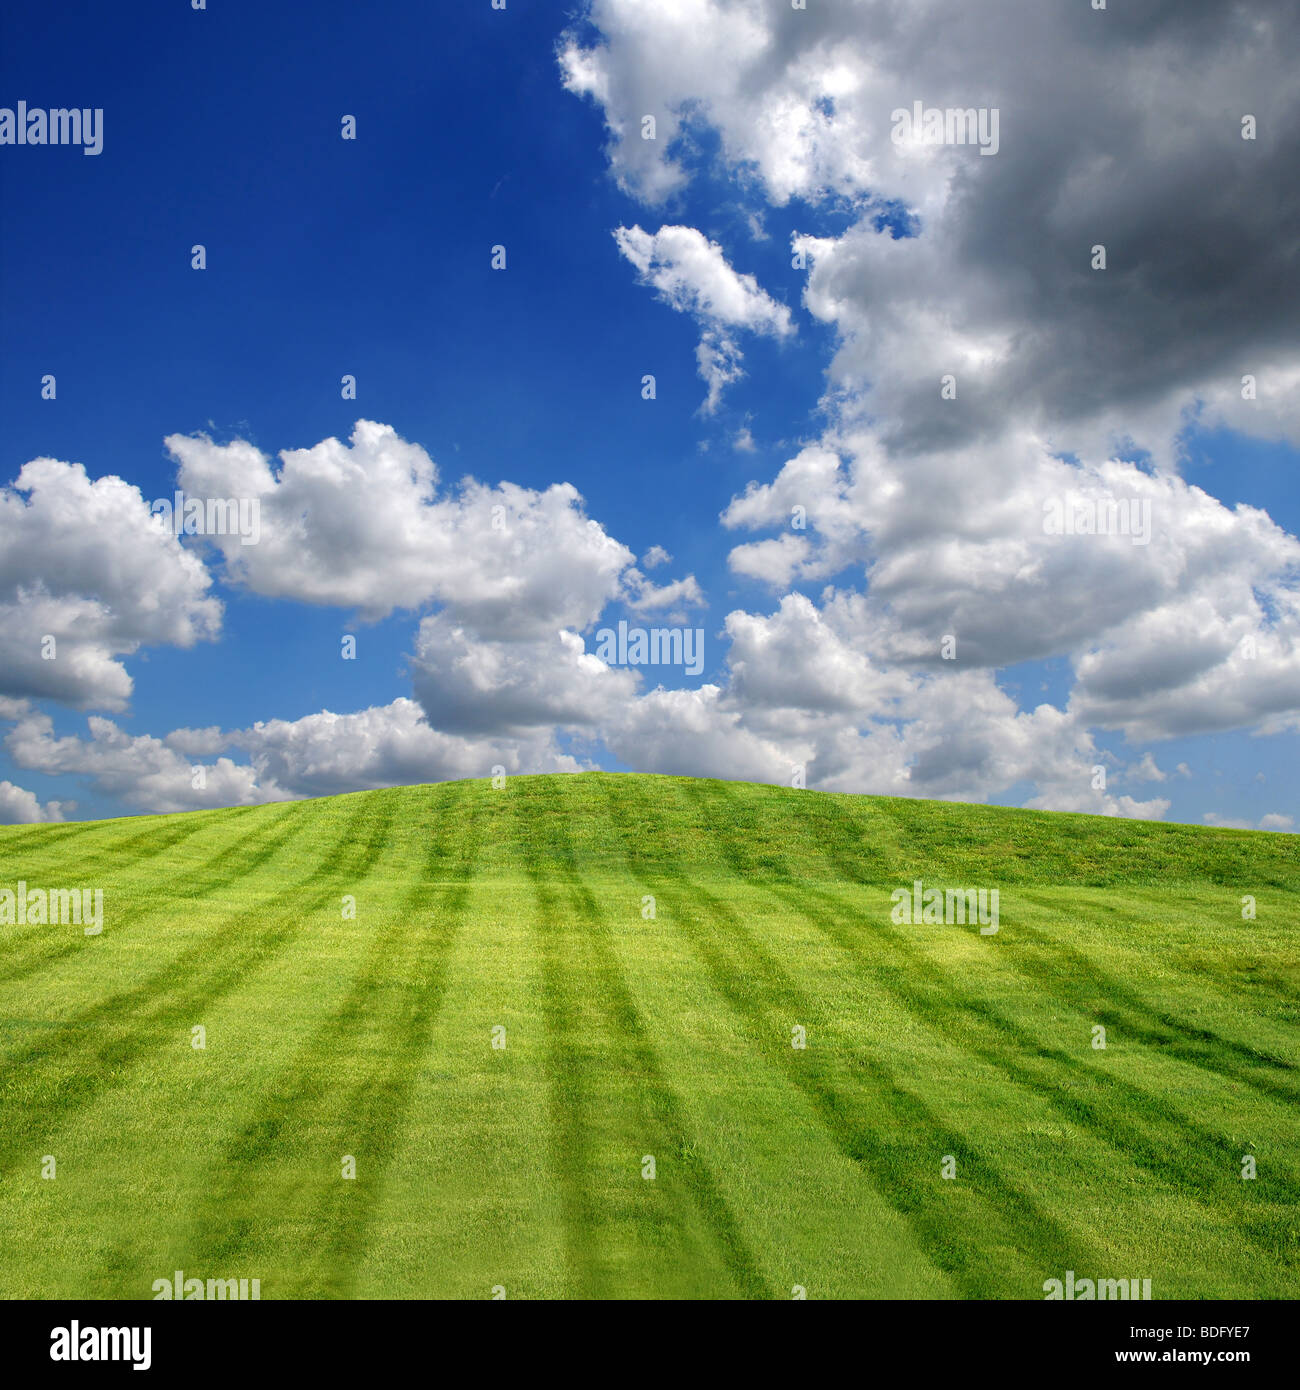 Green field with blue sky and clouds Stock Photo